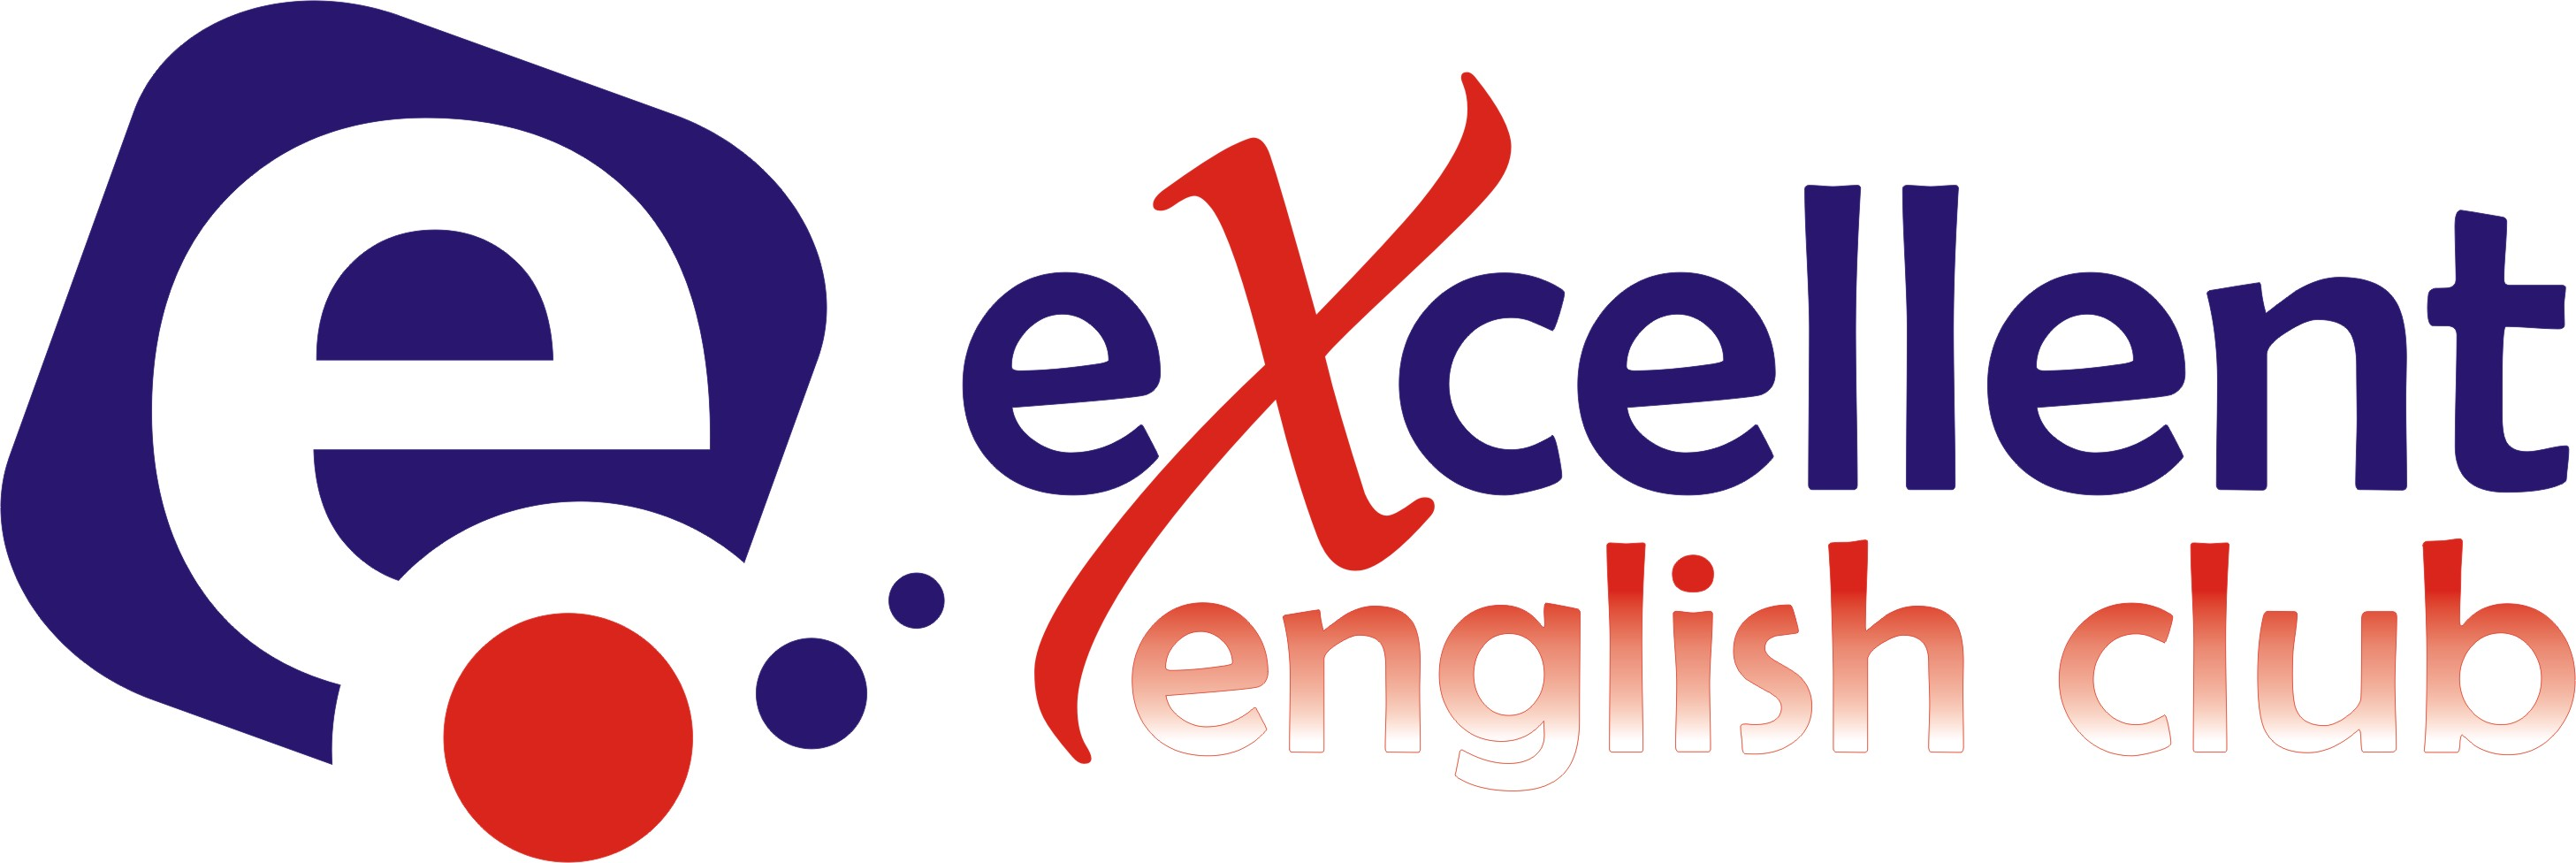 Excellent English Club